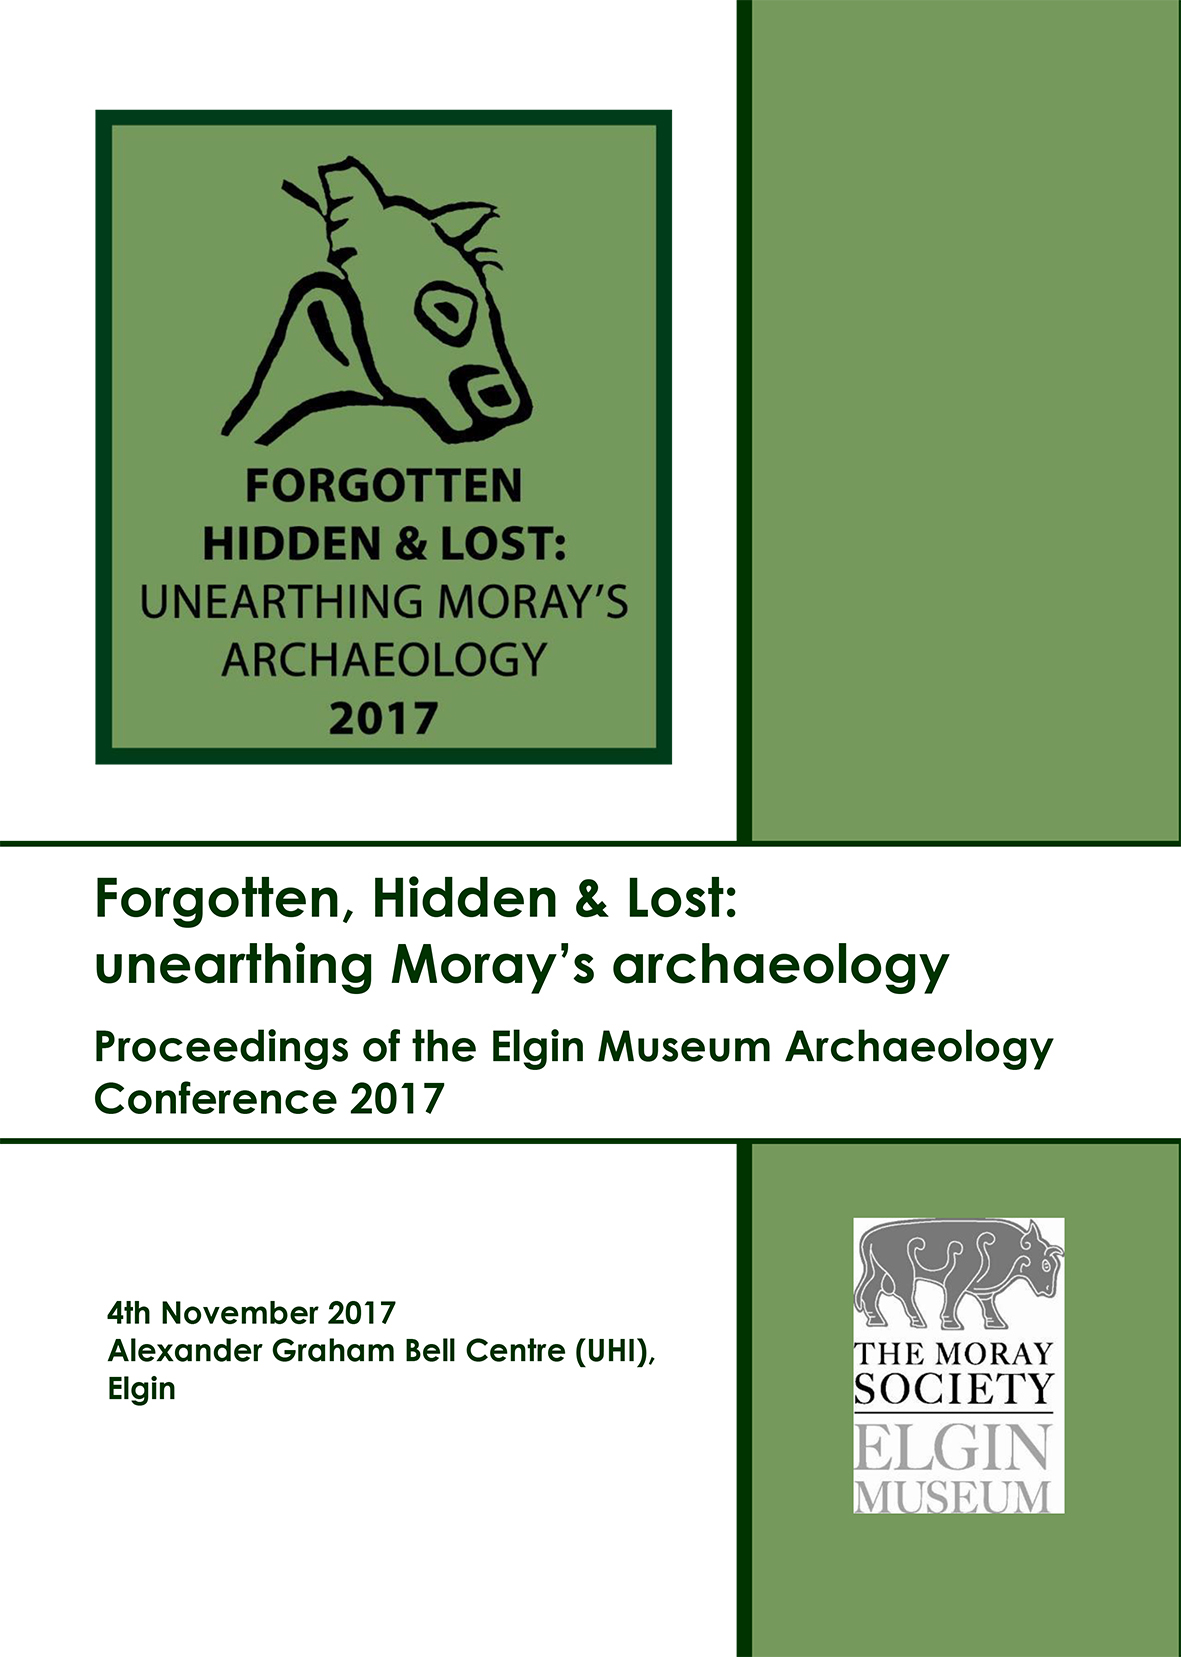 Proceedings of the Elgin Museum Archaeology Conference 2017